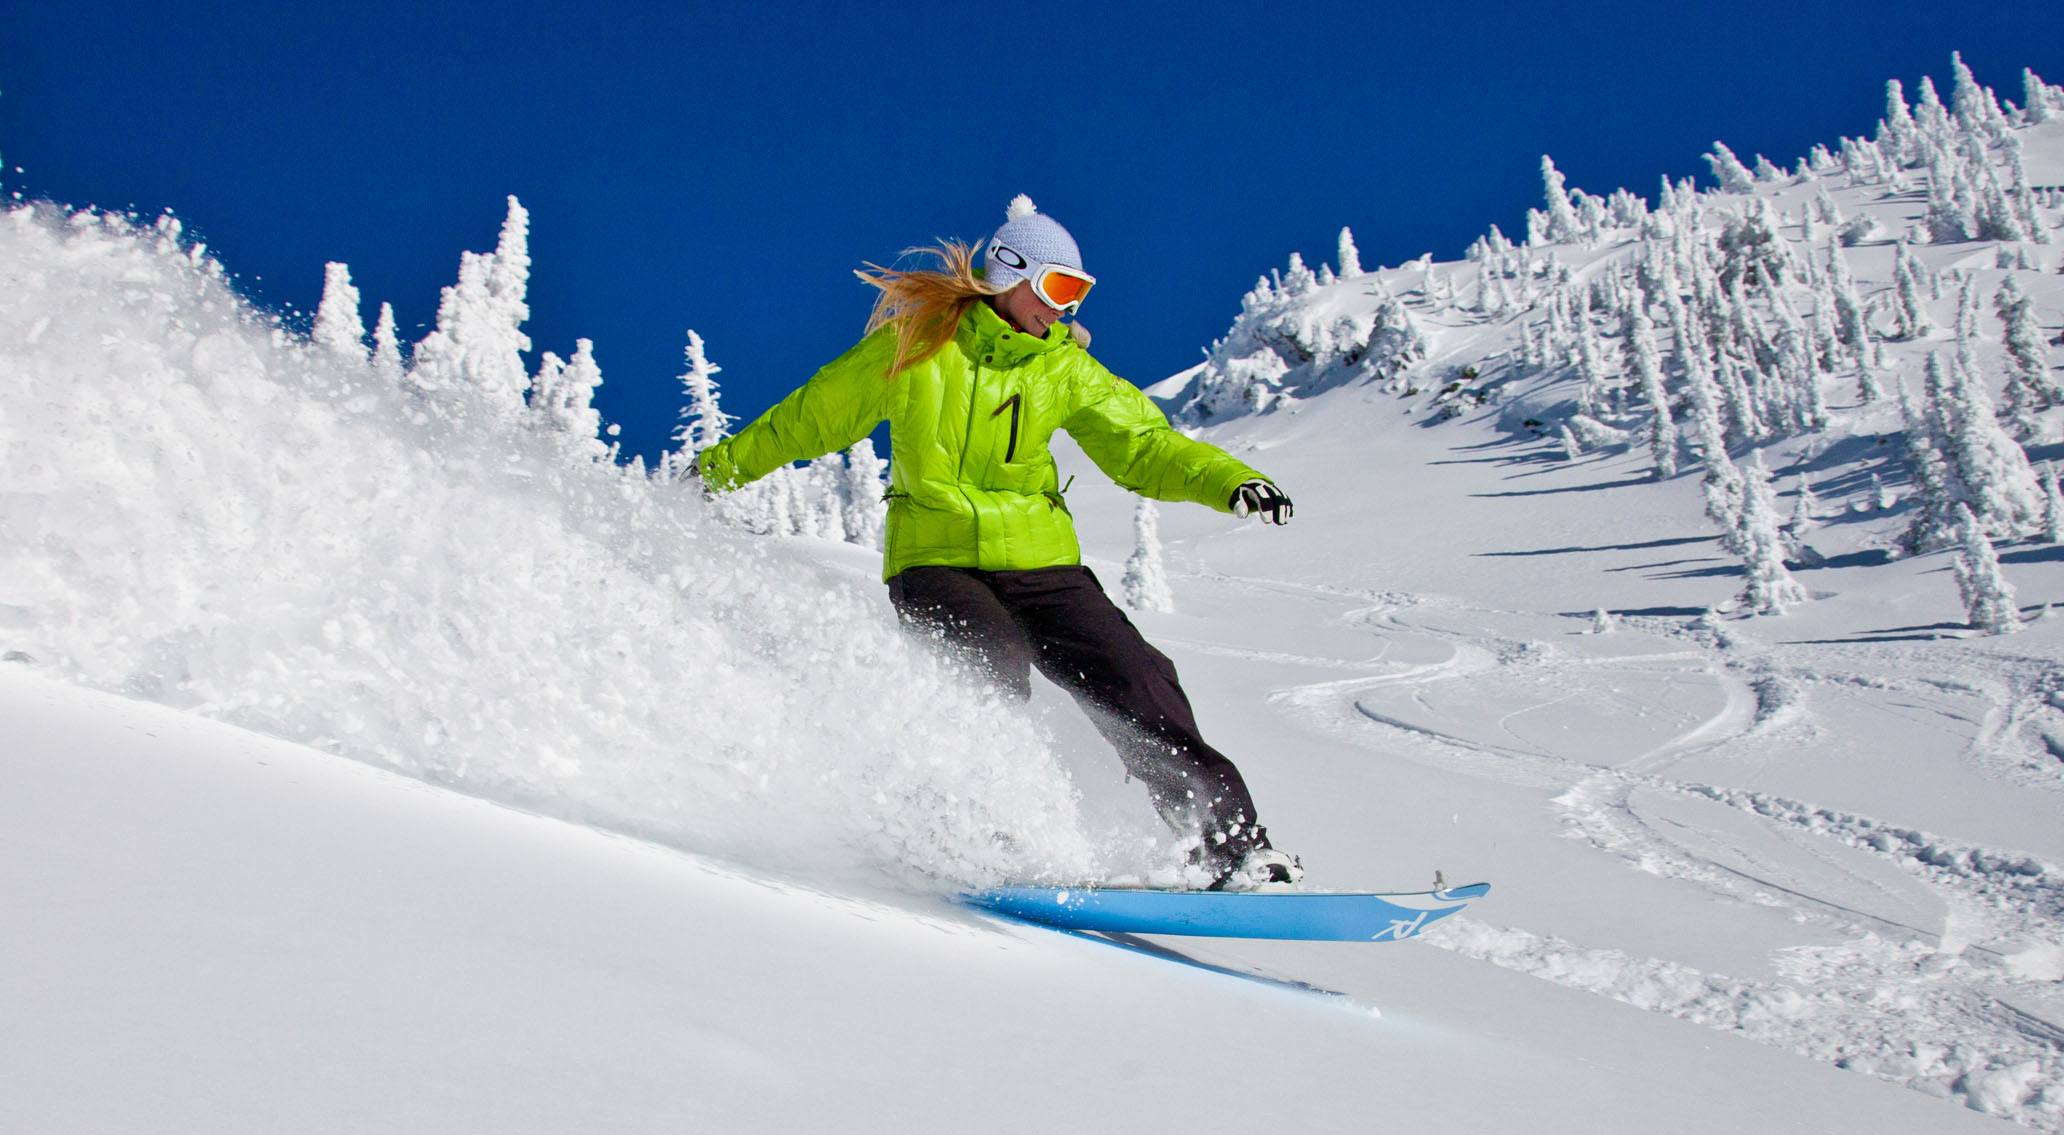 31 ski resorts to shred in BC this winter